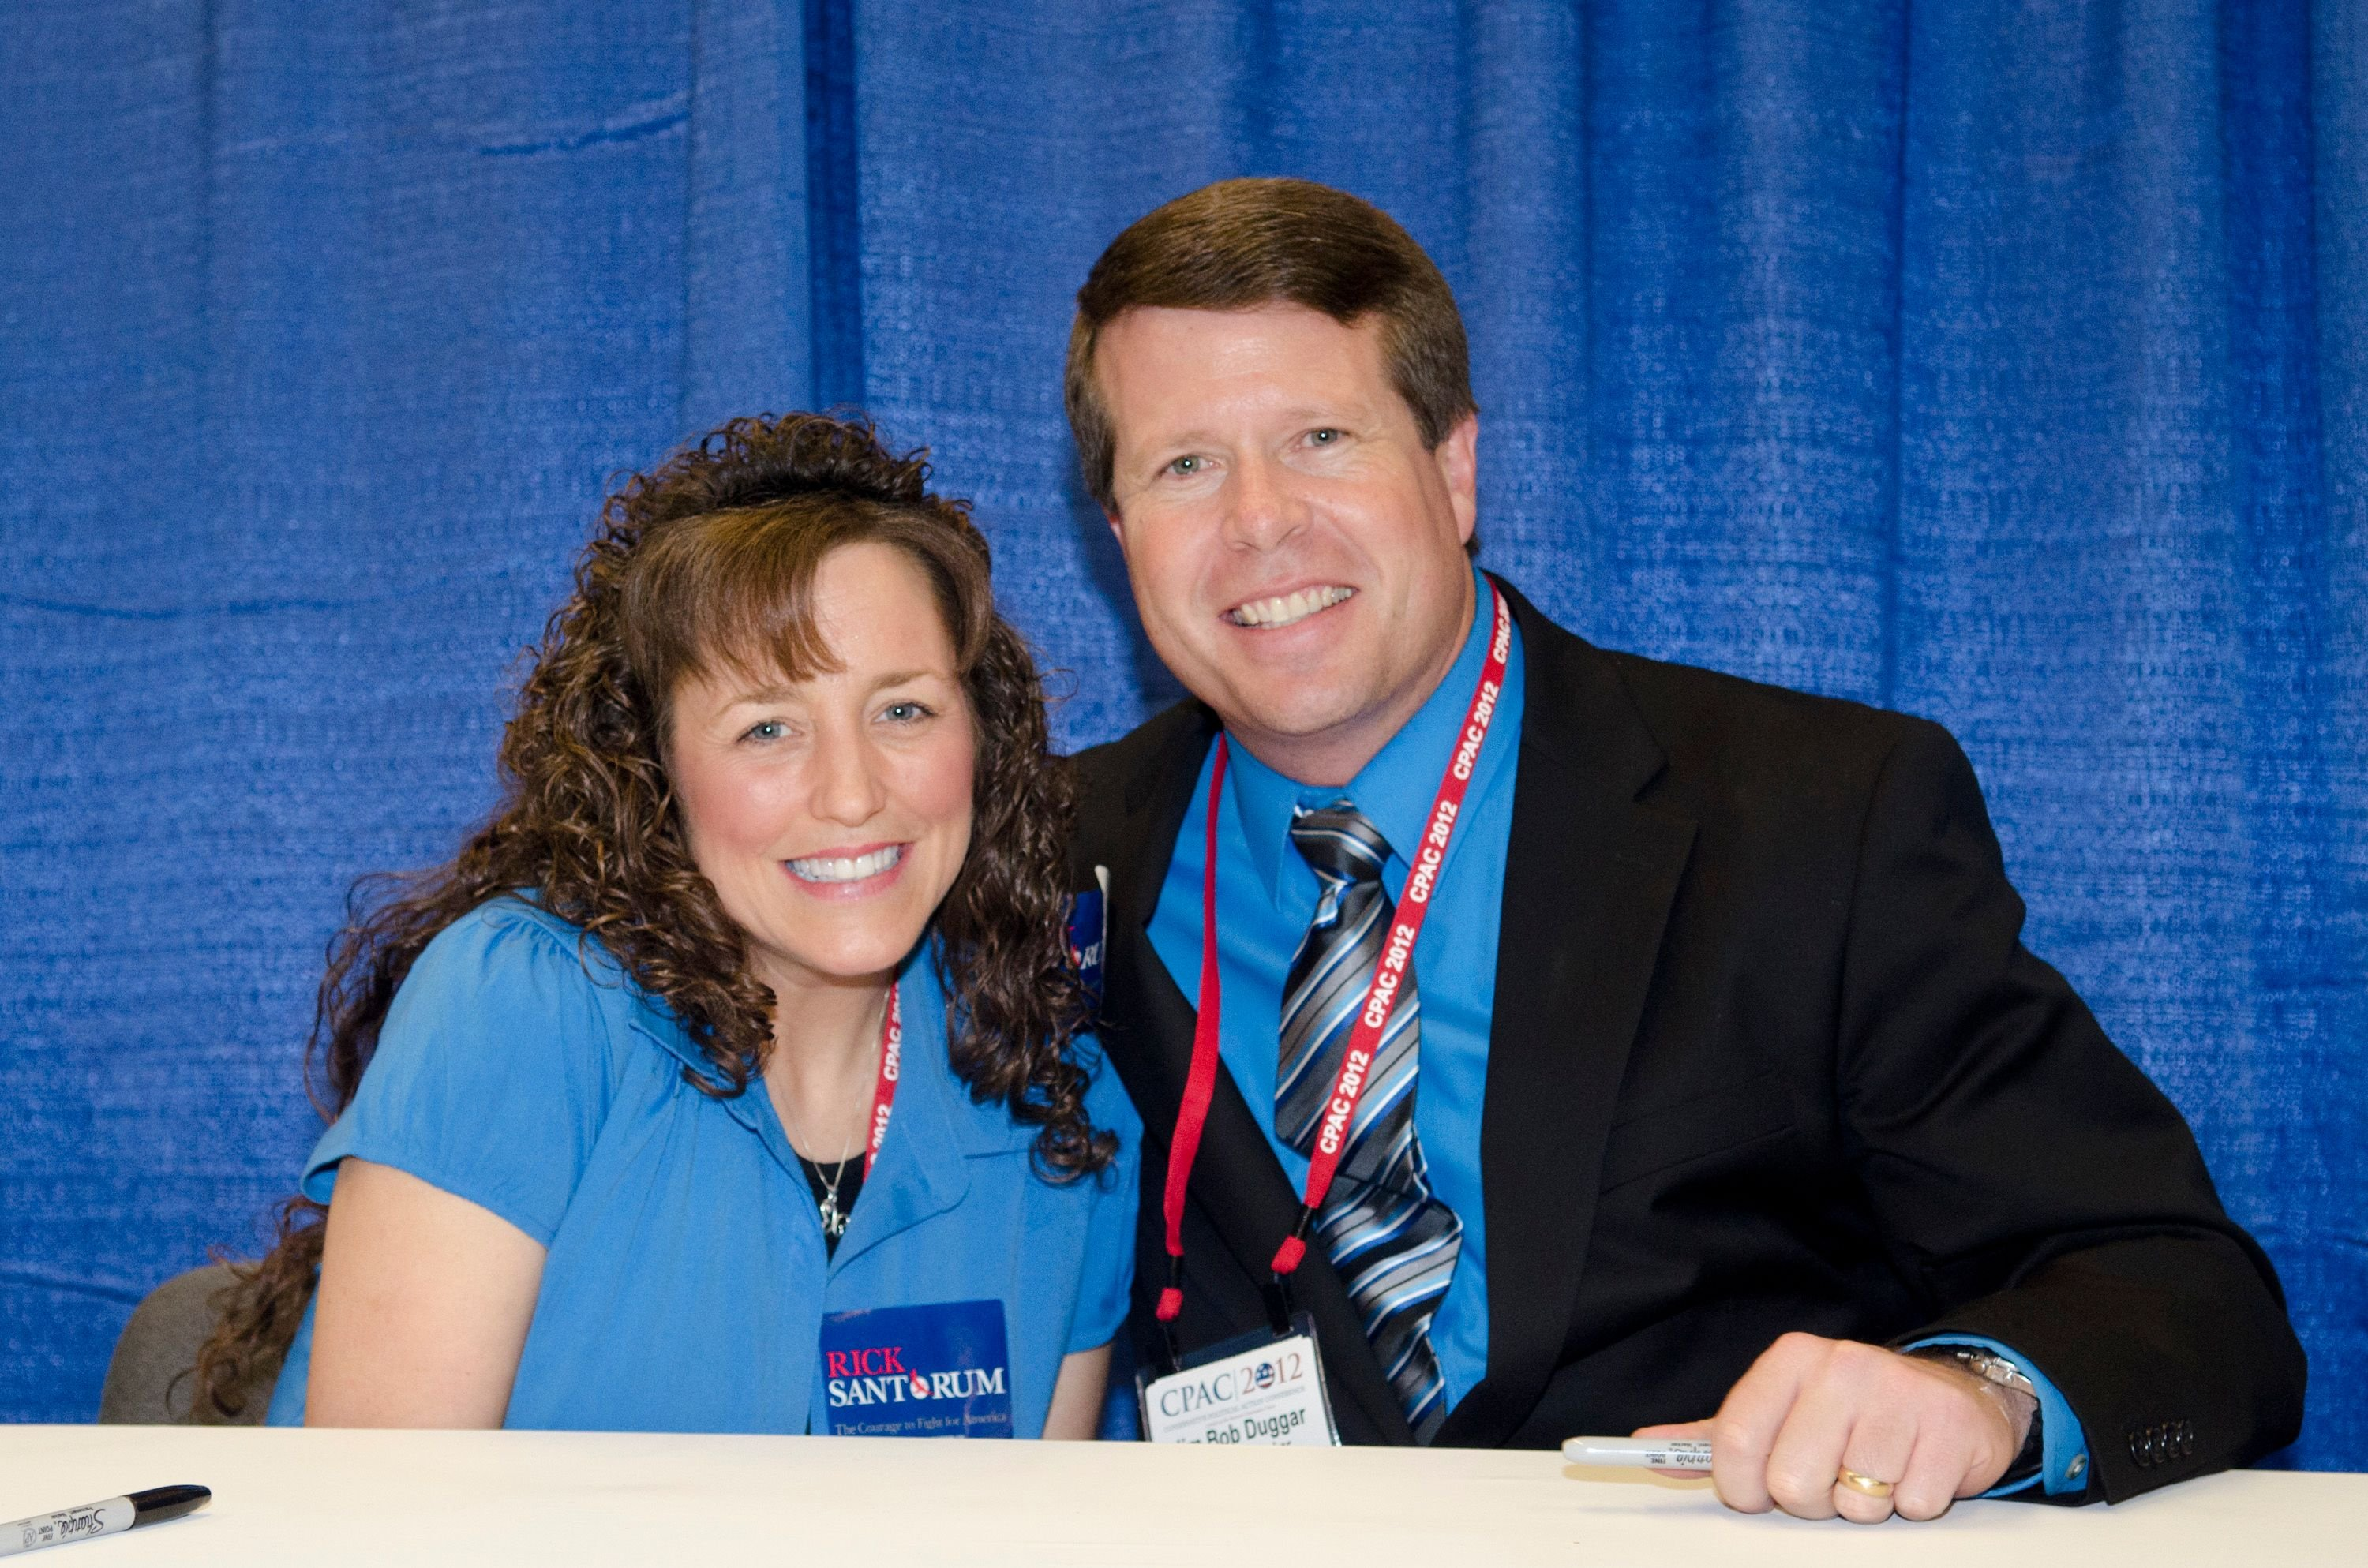 Michelle Duggar and Jim Bob Duggar during the Conservative Political Action Conference (CPAC) on February 10, 2012. | Source: Getty Images